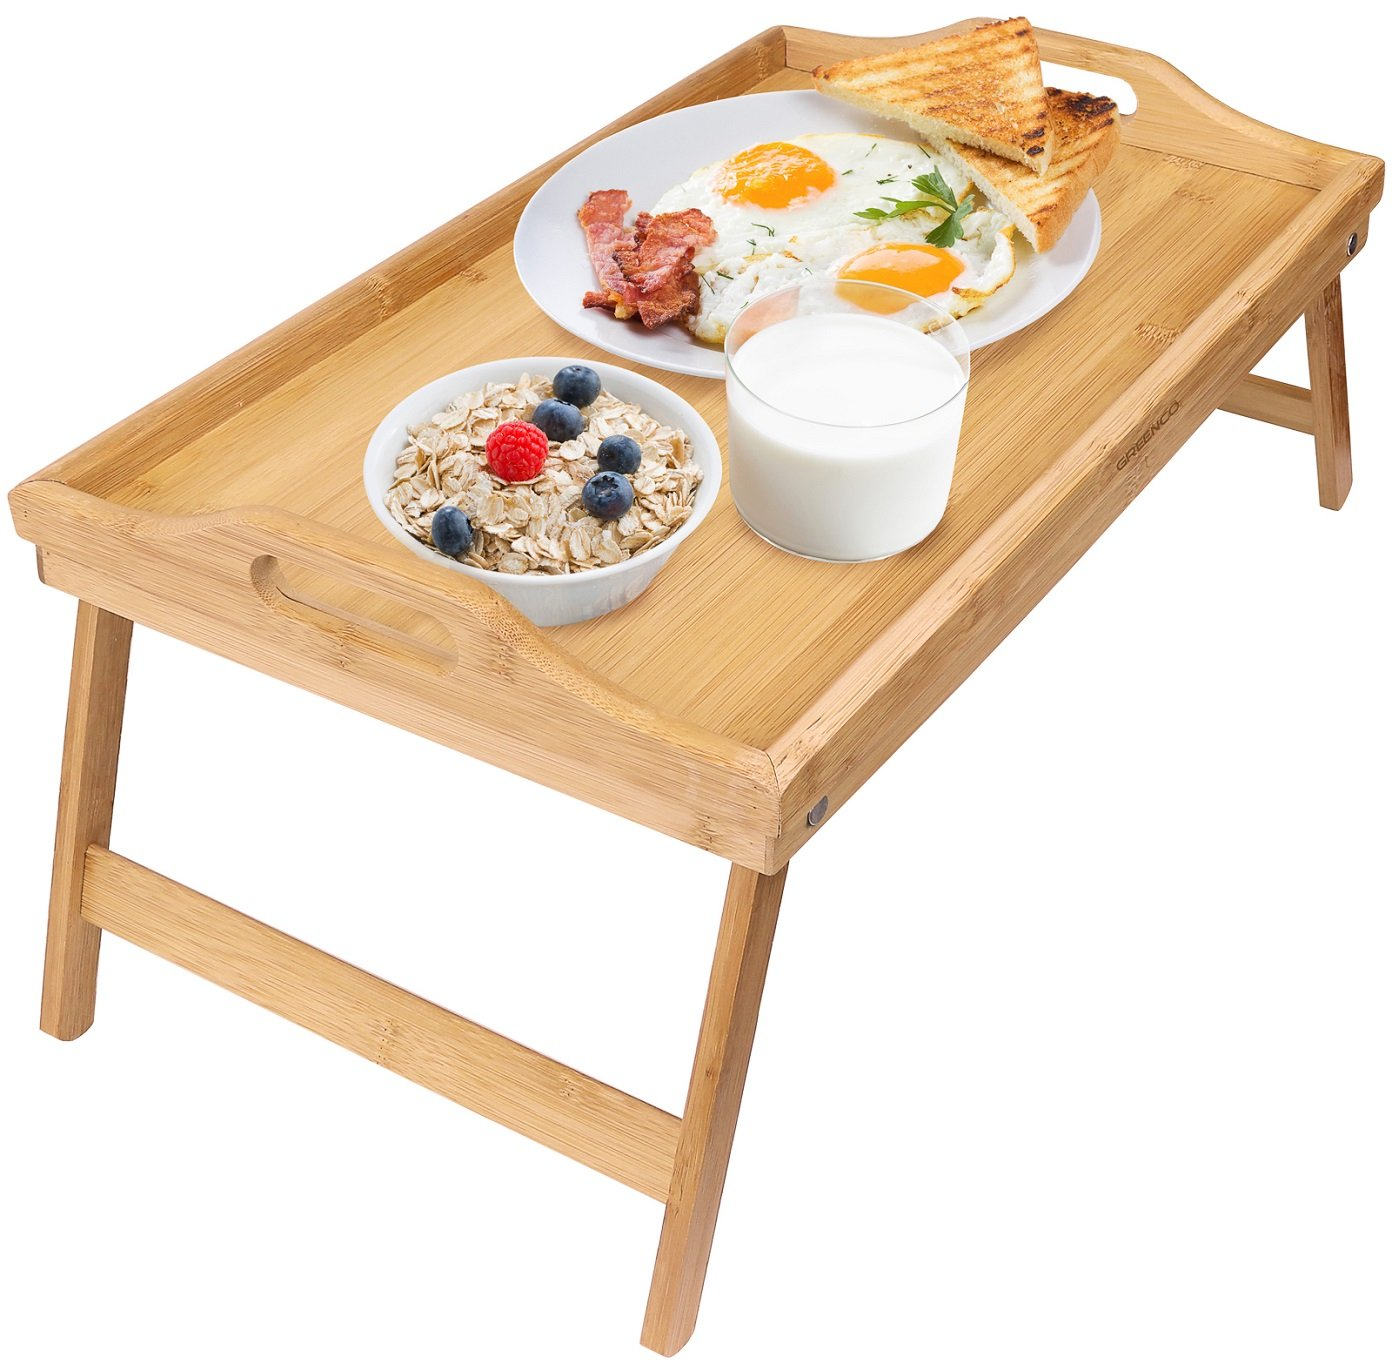 Eating Tables: Best Lap Tables & Food Trays For Eating In Bed